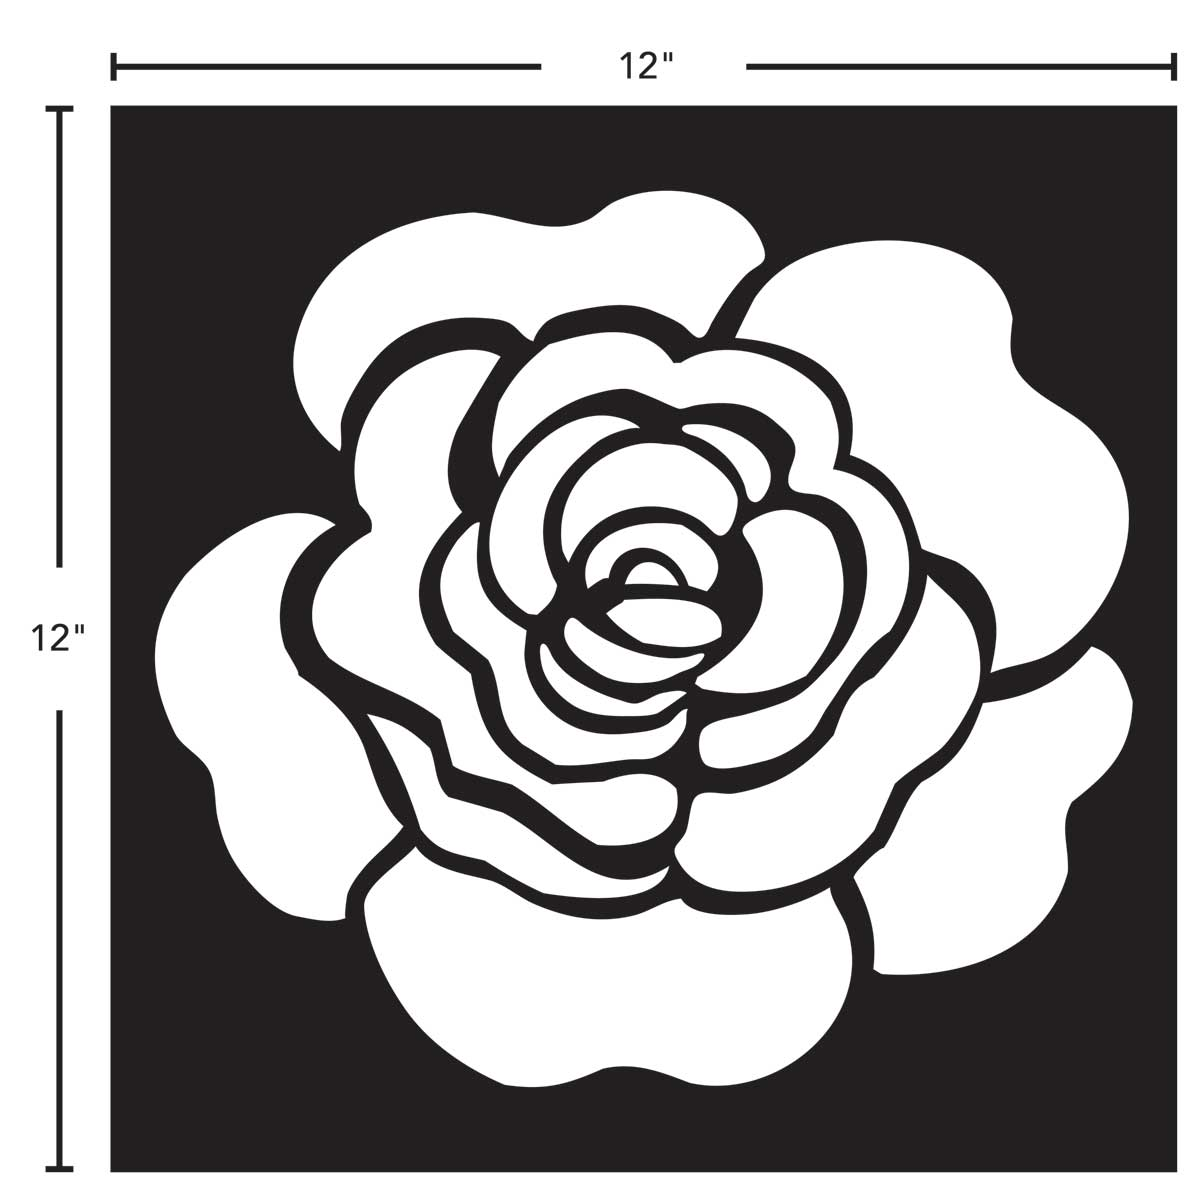 FolkArt ® Painting Stencils - Adhesive Laser - Rose